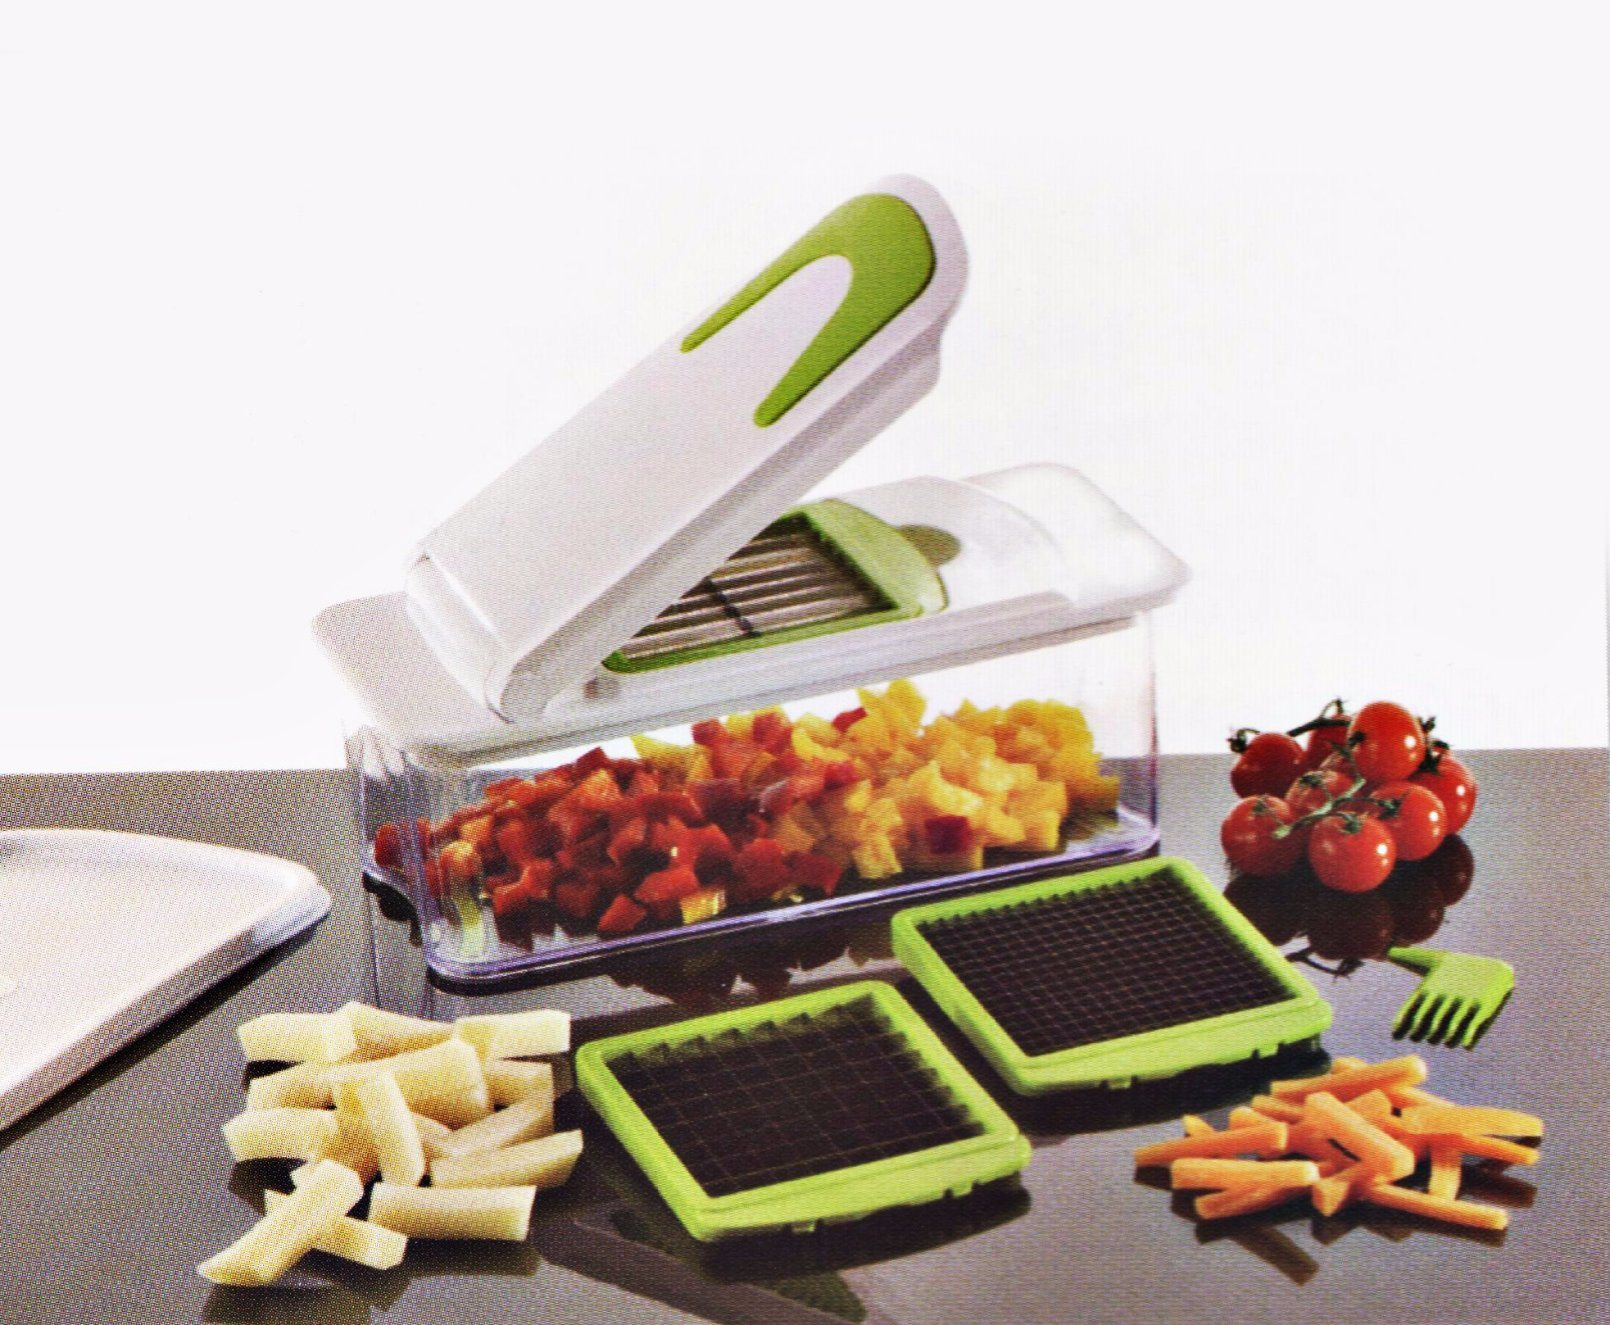 3 in 1 Plastic Vegetable Cutting Food Chopper Dice and Slice Machine Cg080